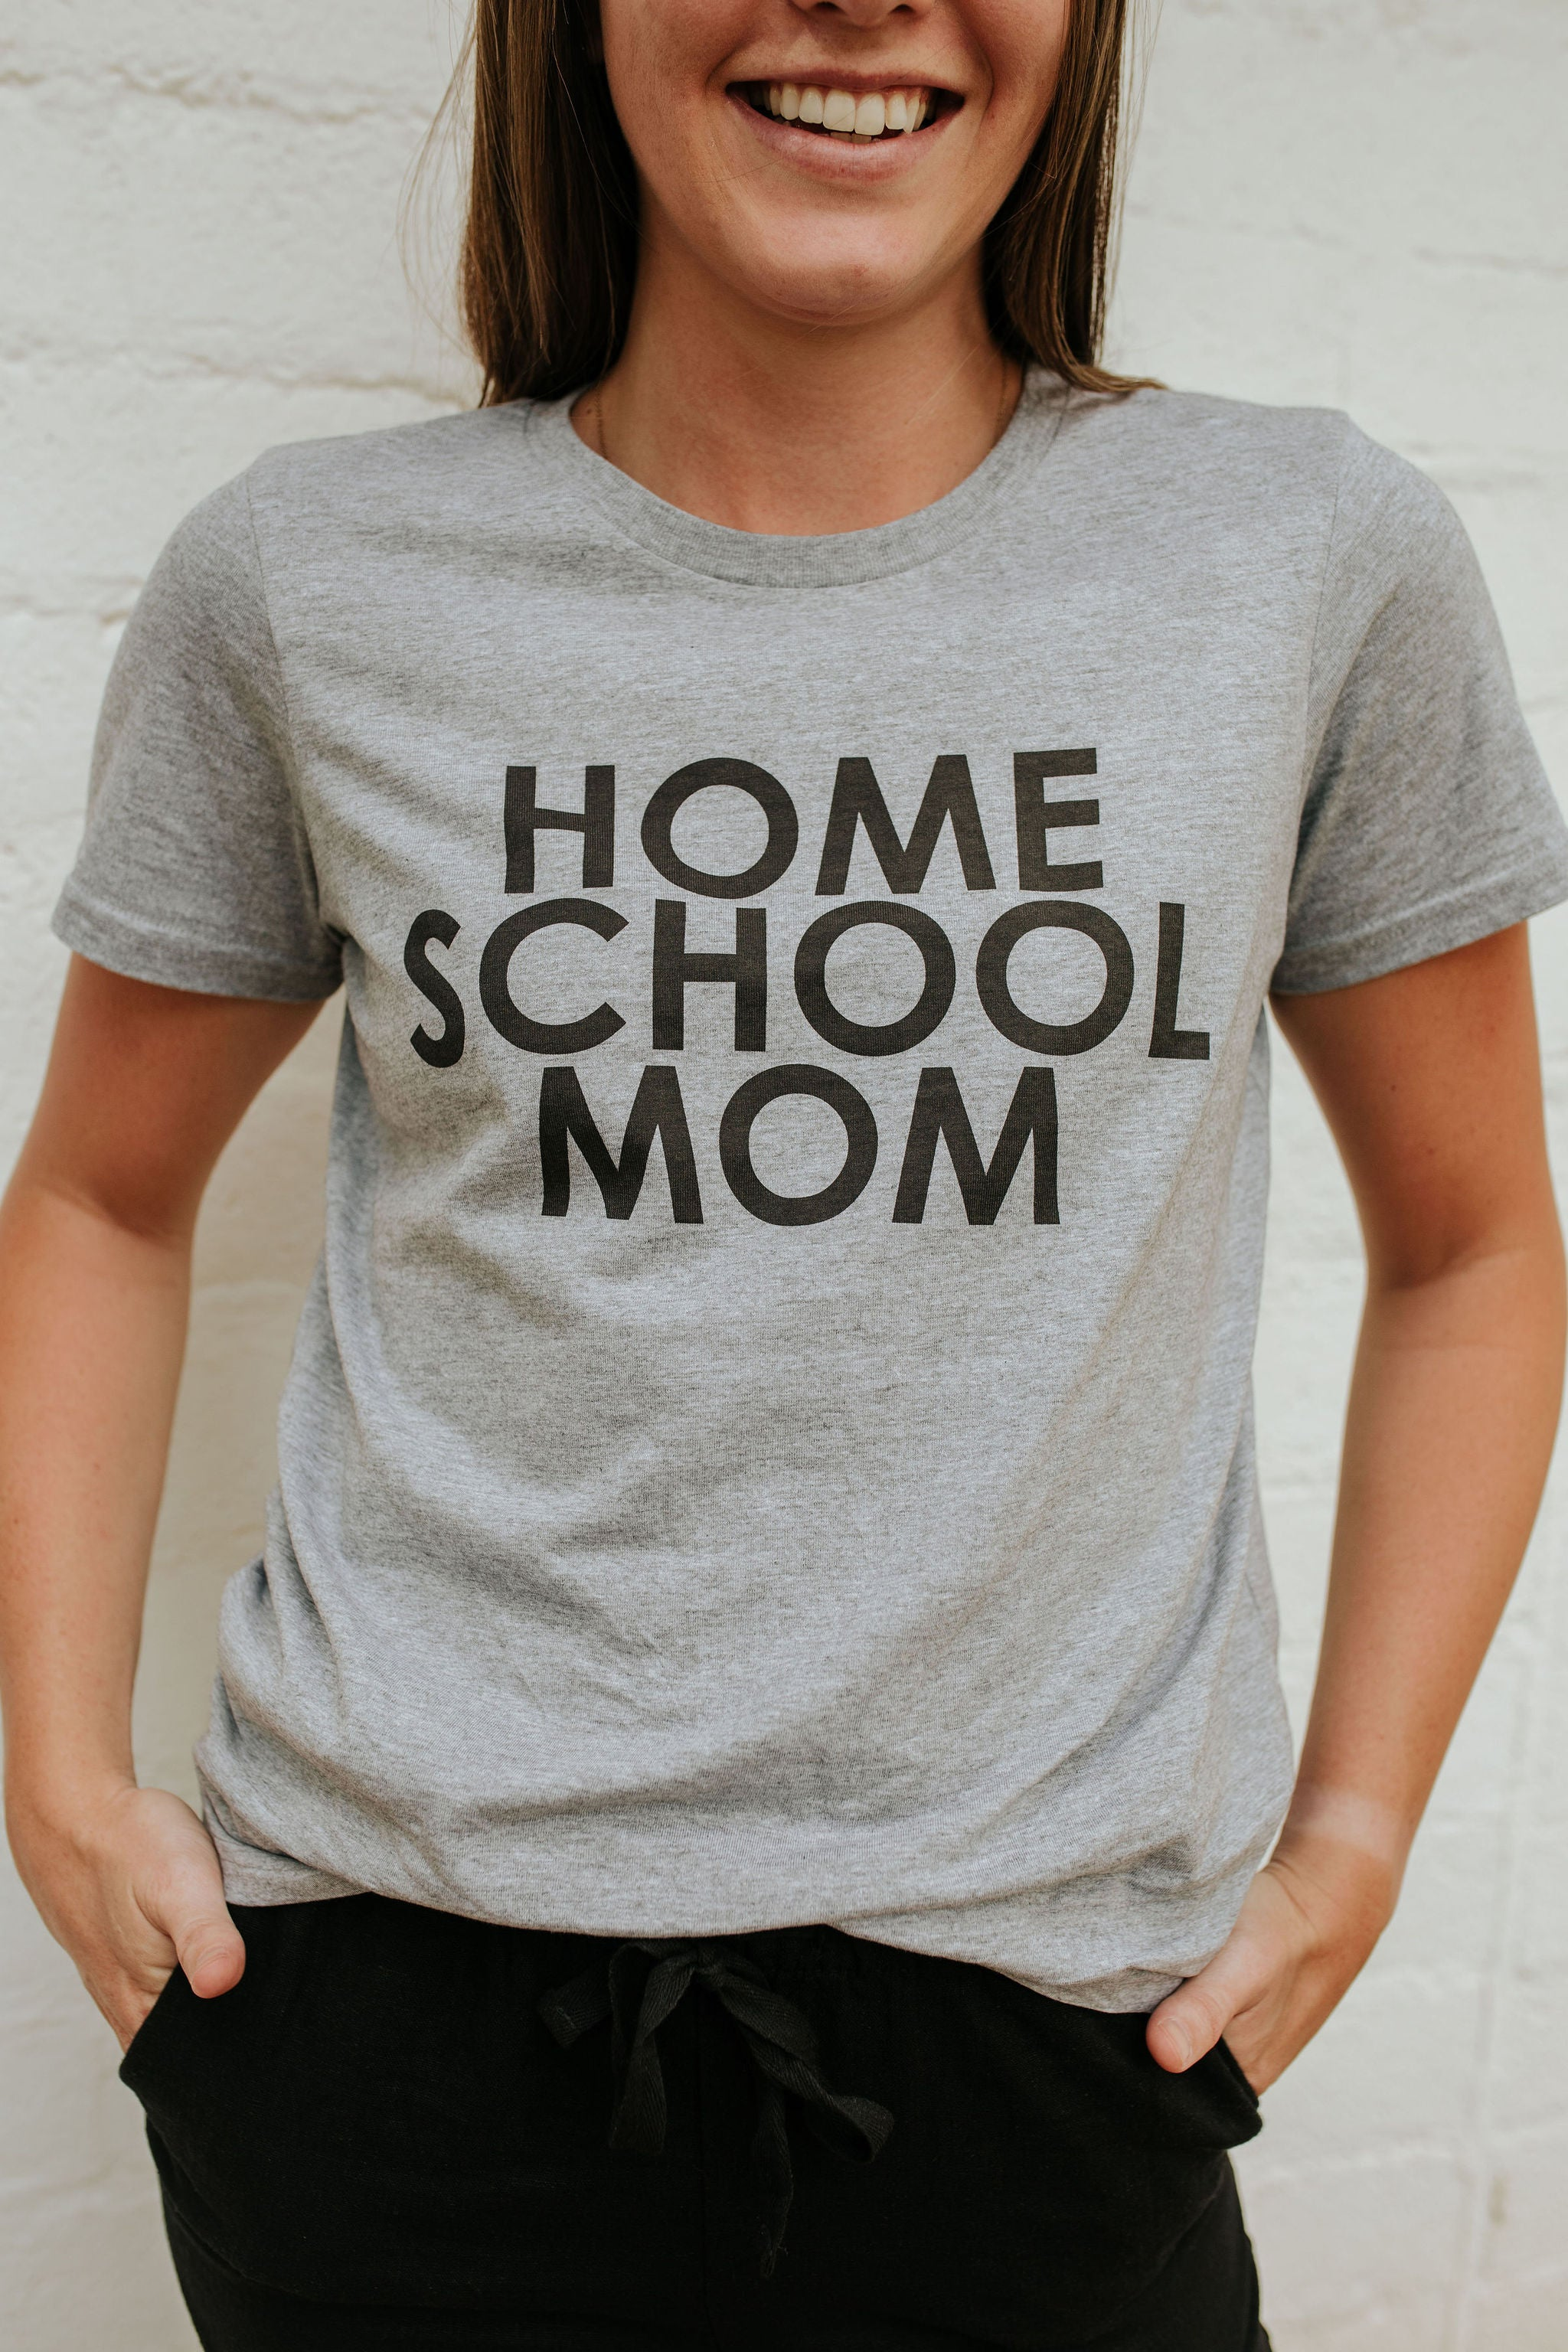 THE HOME SCHOOL MOM GRAPHIC TEE IN HEATHER GREY BY PINK DESERT